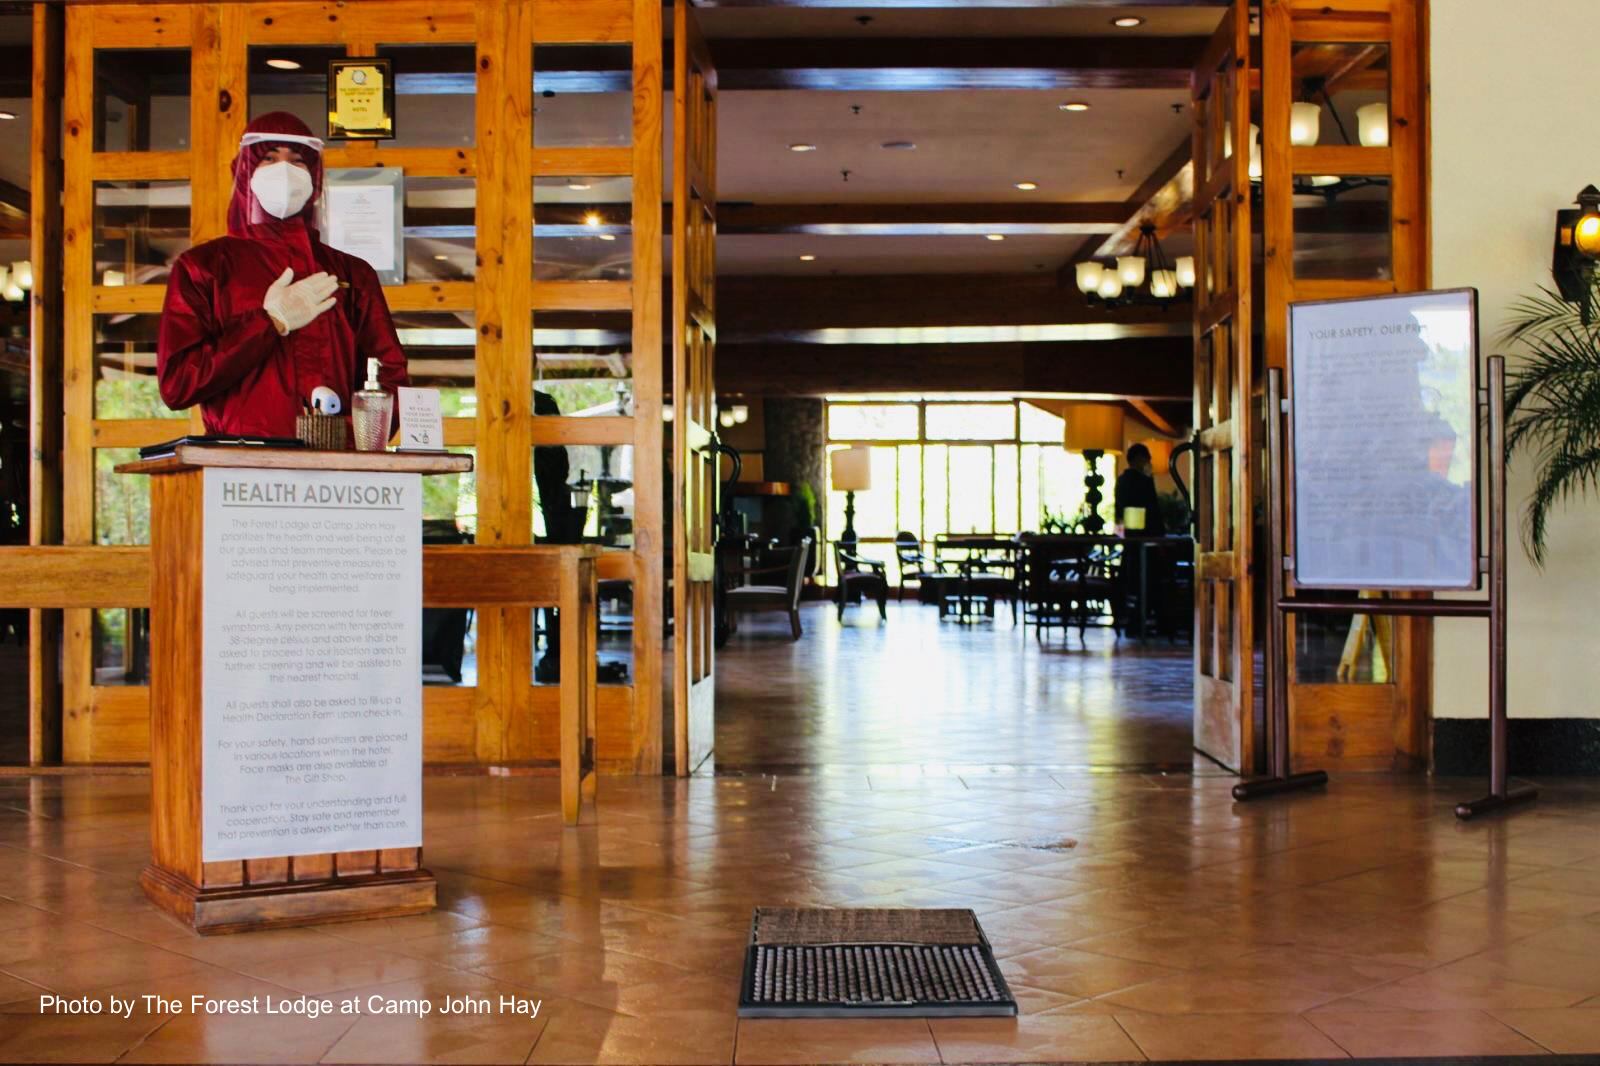 Entrance to The Forest Lodge at Camp John Hay